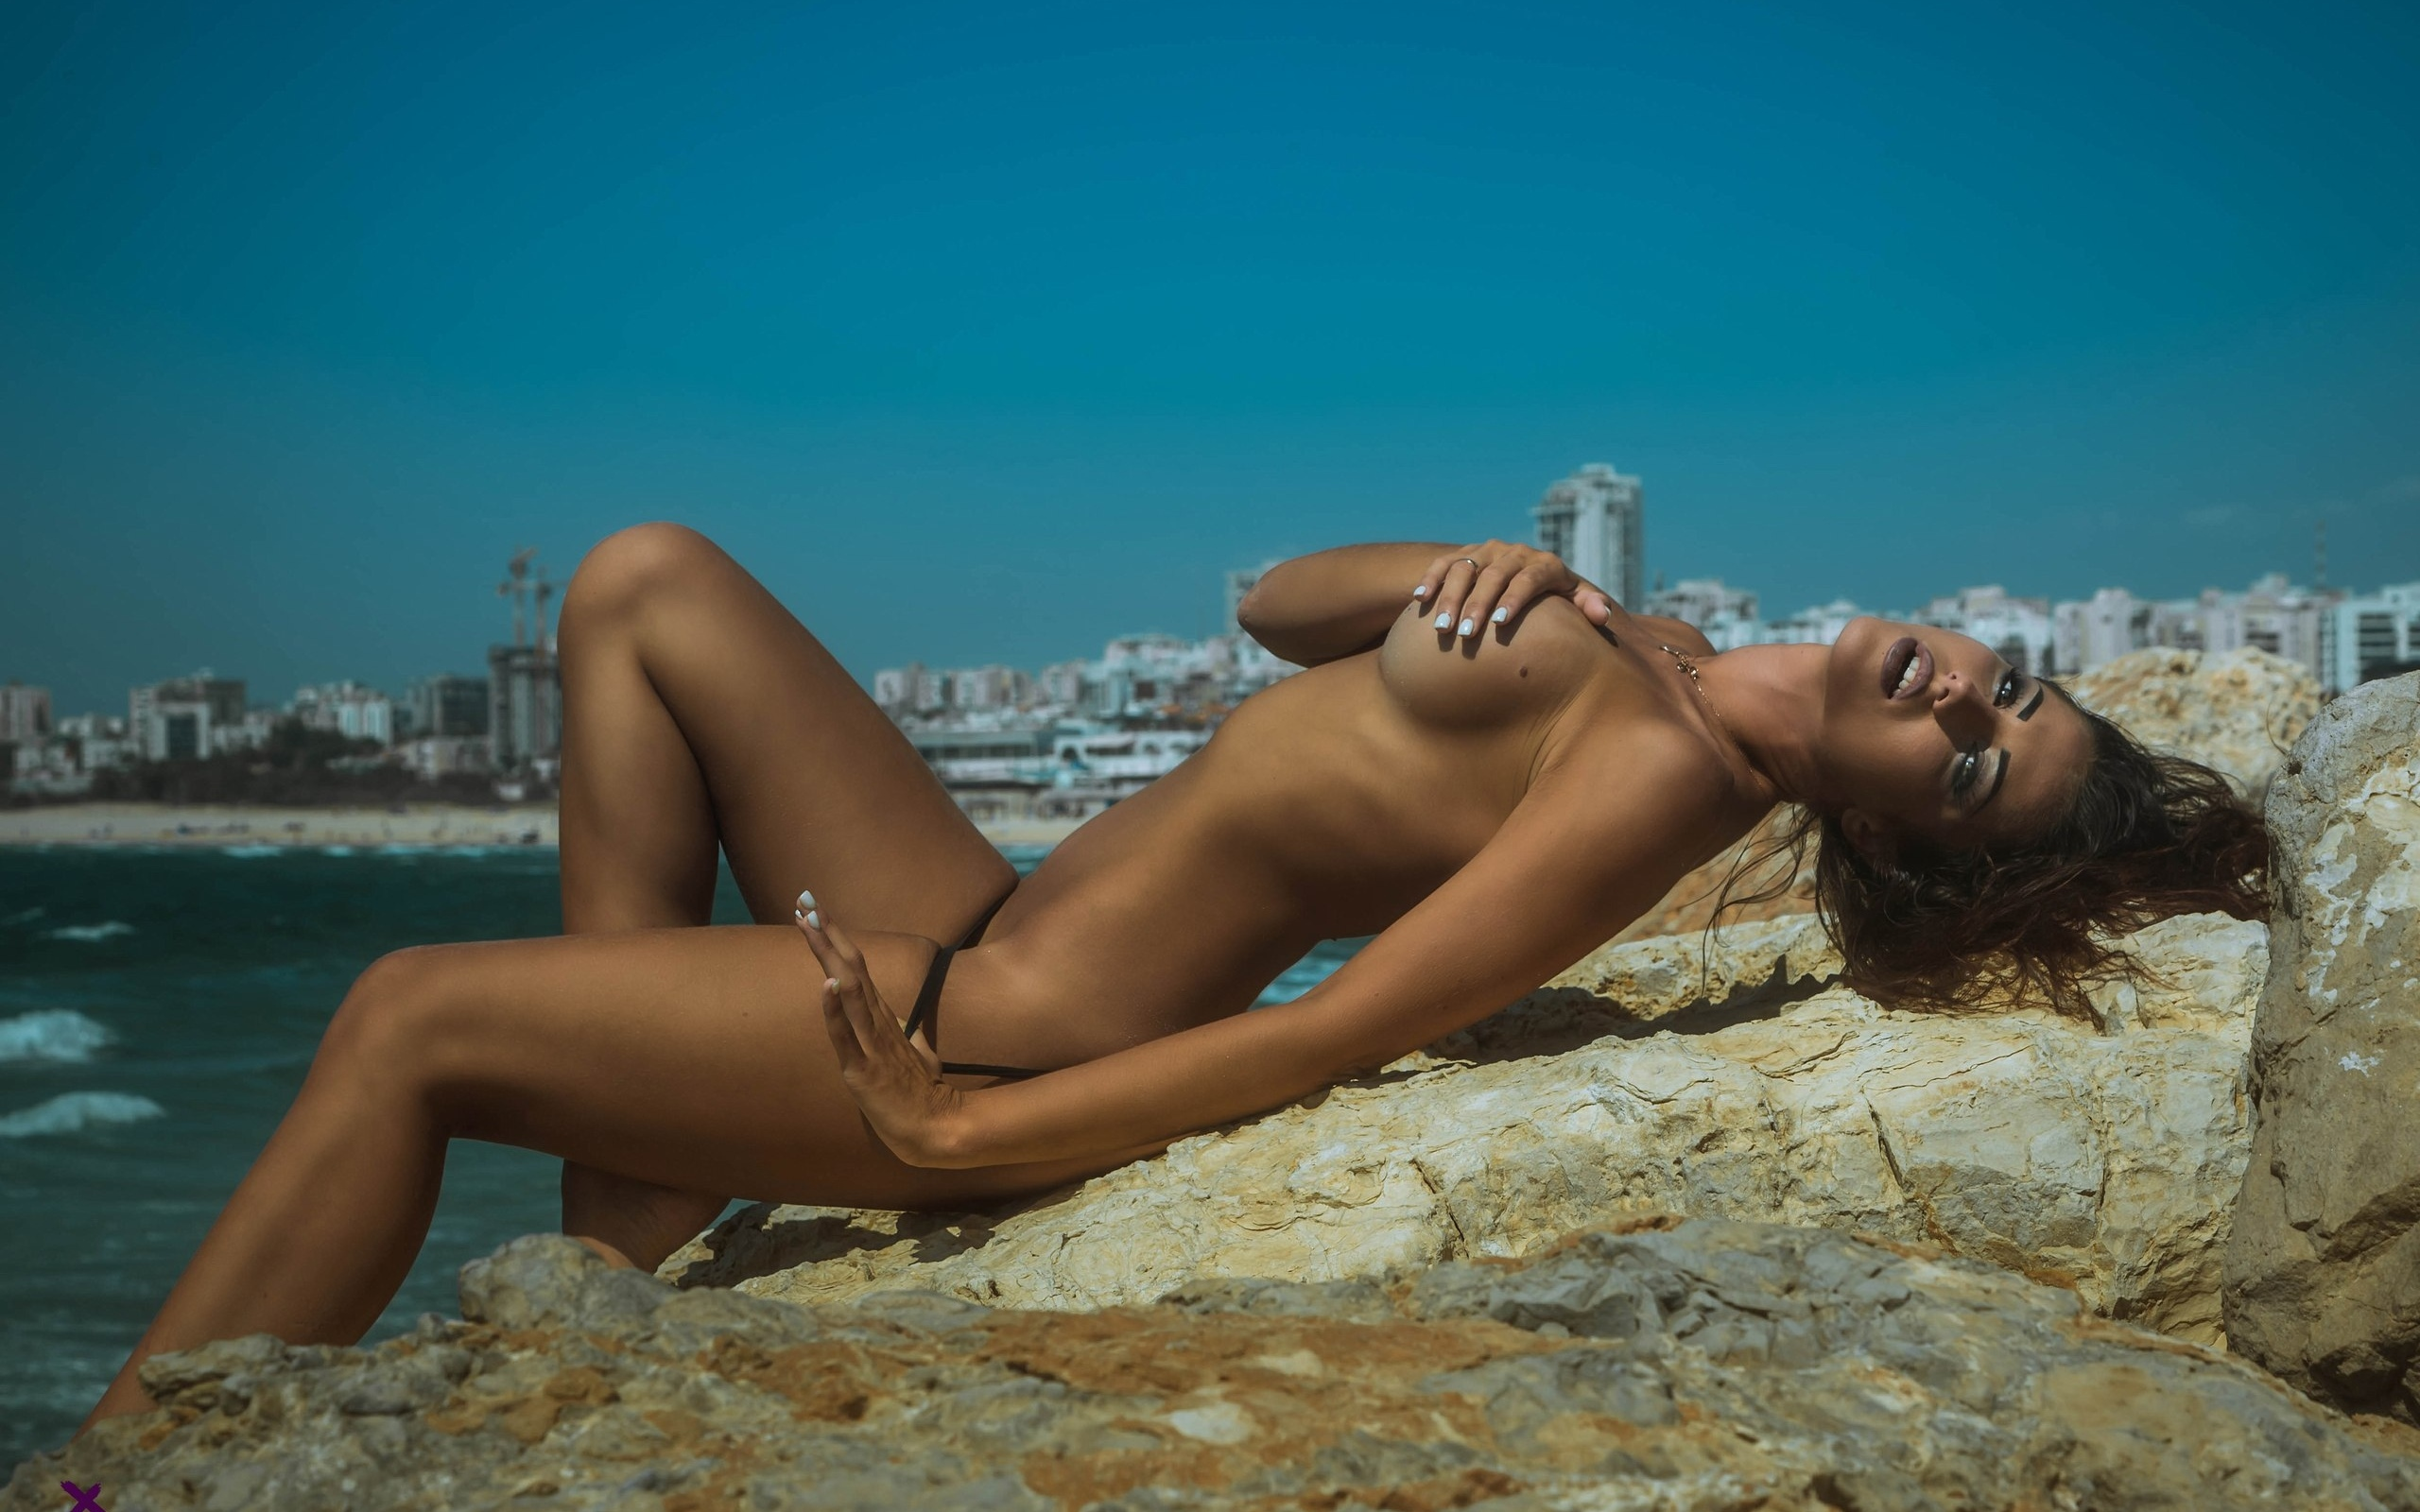 tanned-women-topless-pictures-erotic